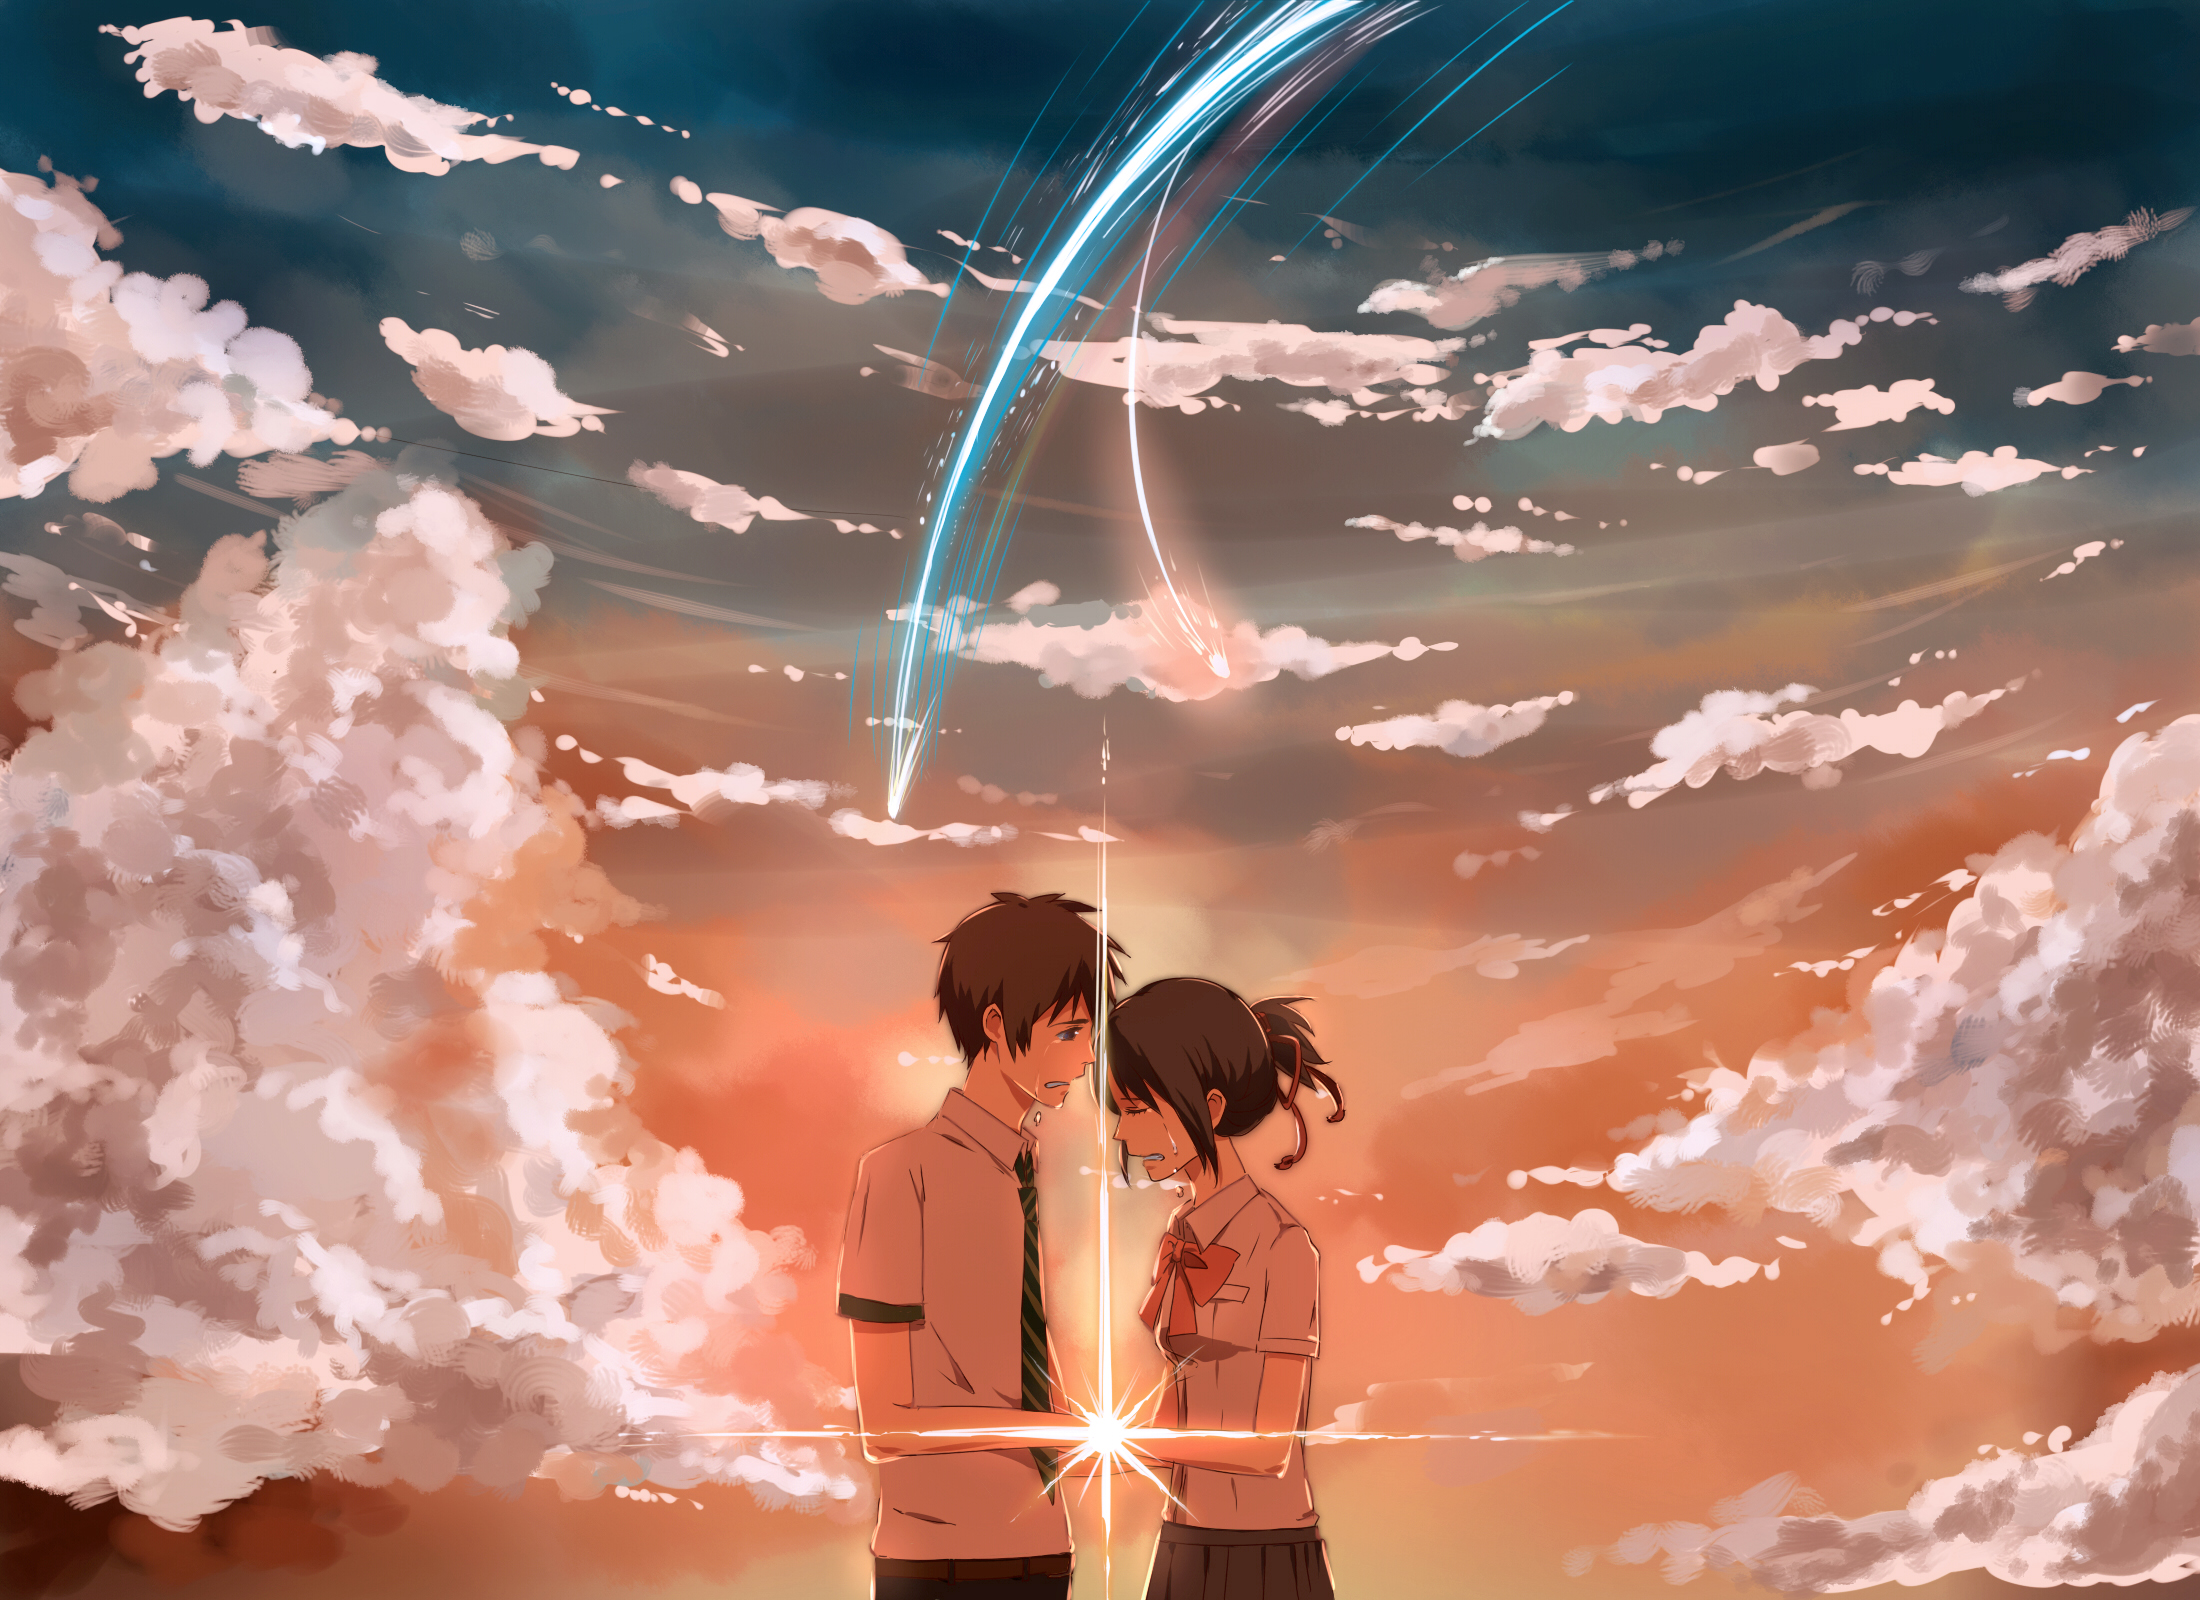 S Name Wallpaper Hd Download: 670 Kimi No Na Wa. HD Wallpapers